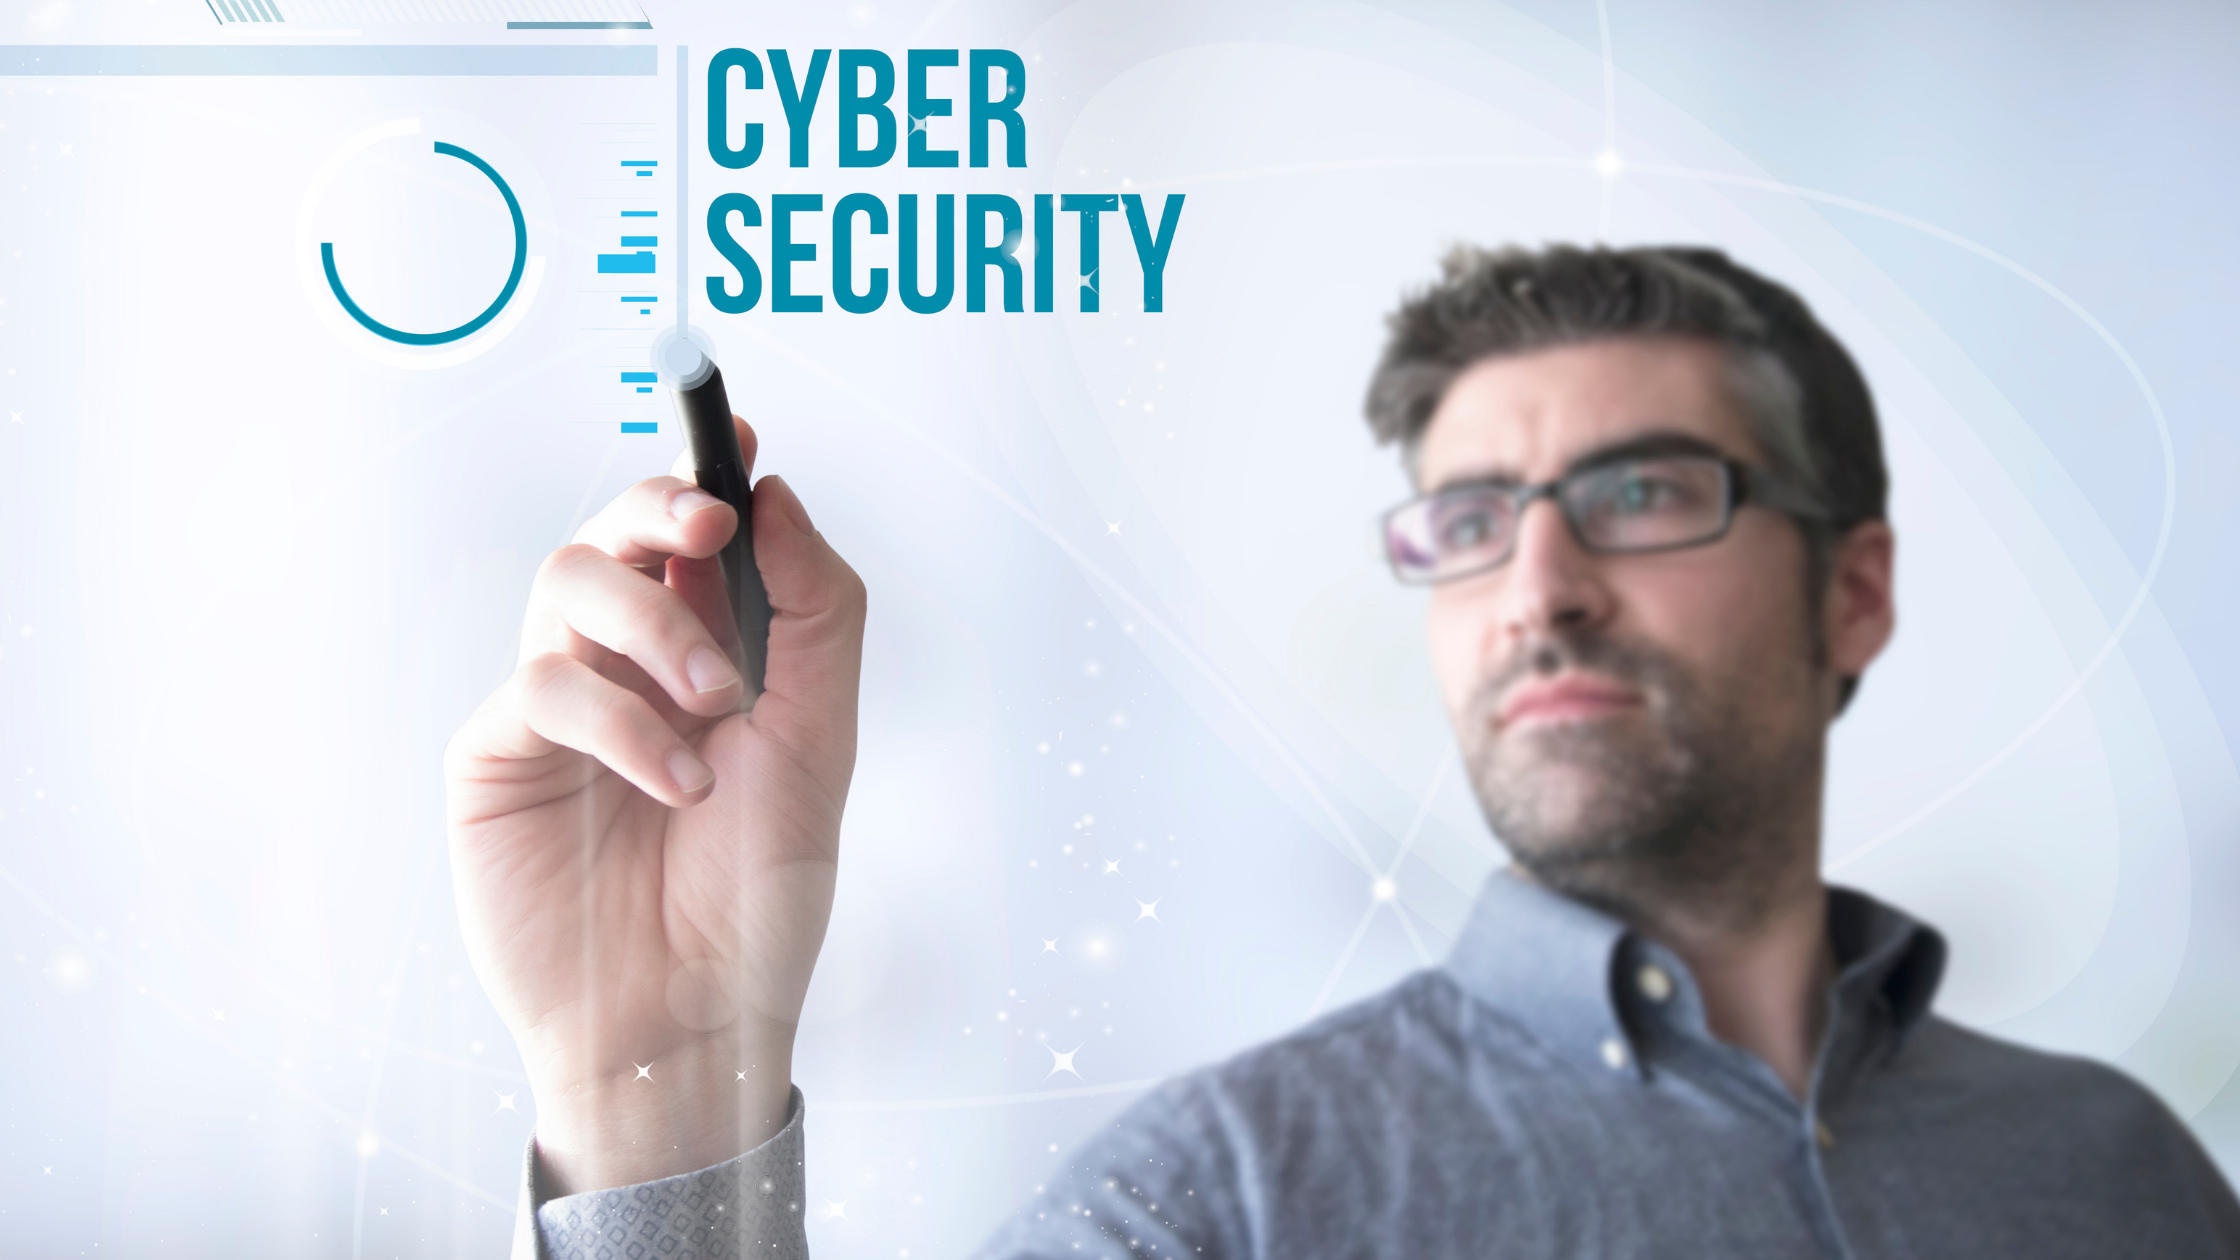 Cybersecurity: Trends and Statistics in 2021